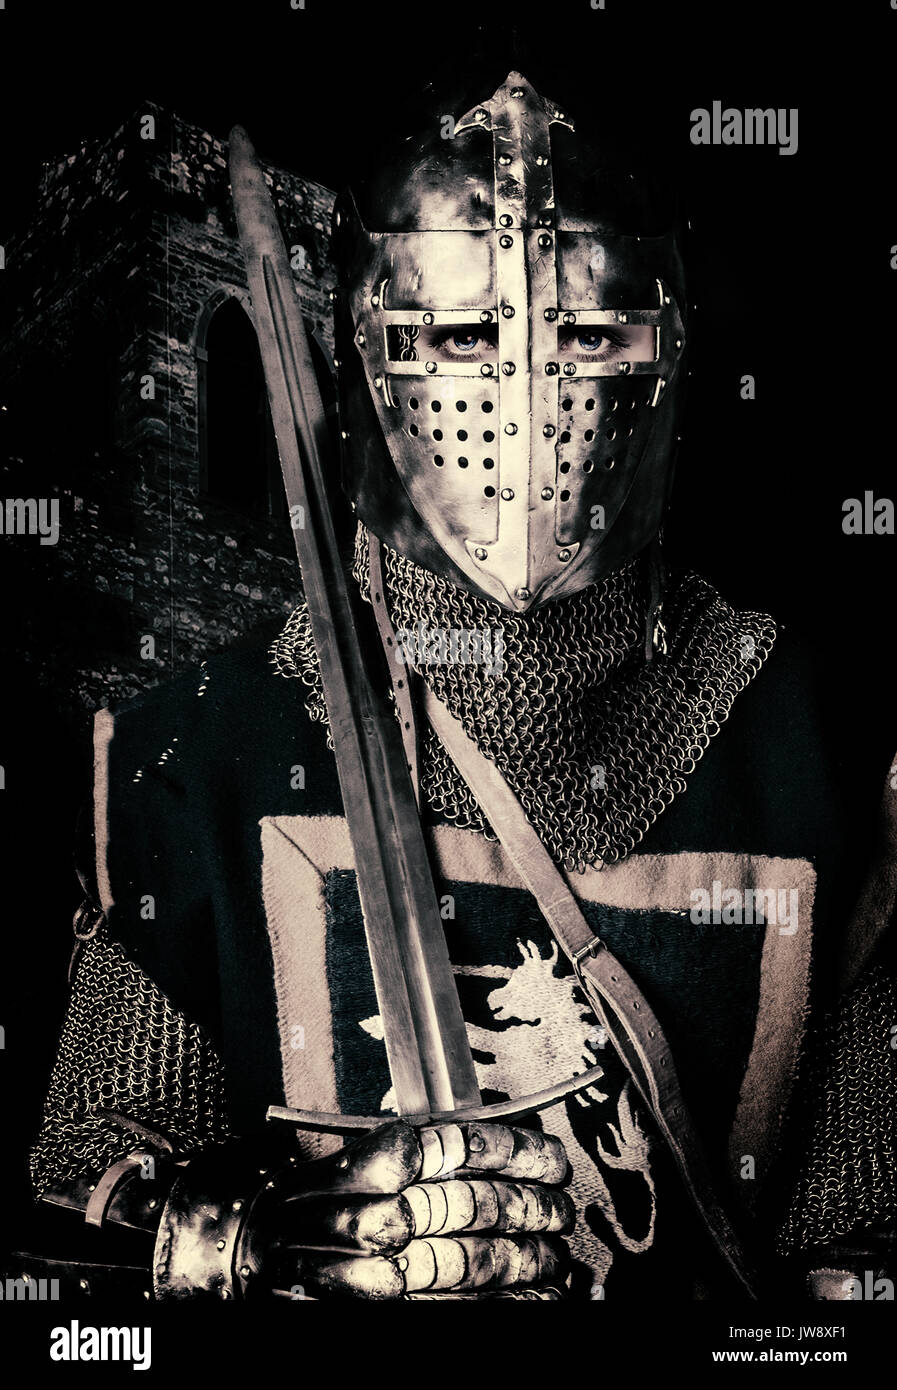 Book cover  - on in battle - Woman in armor with sword - Stock Image